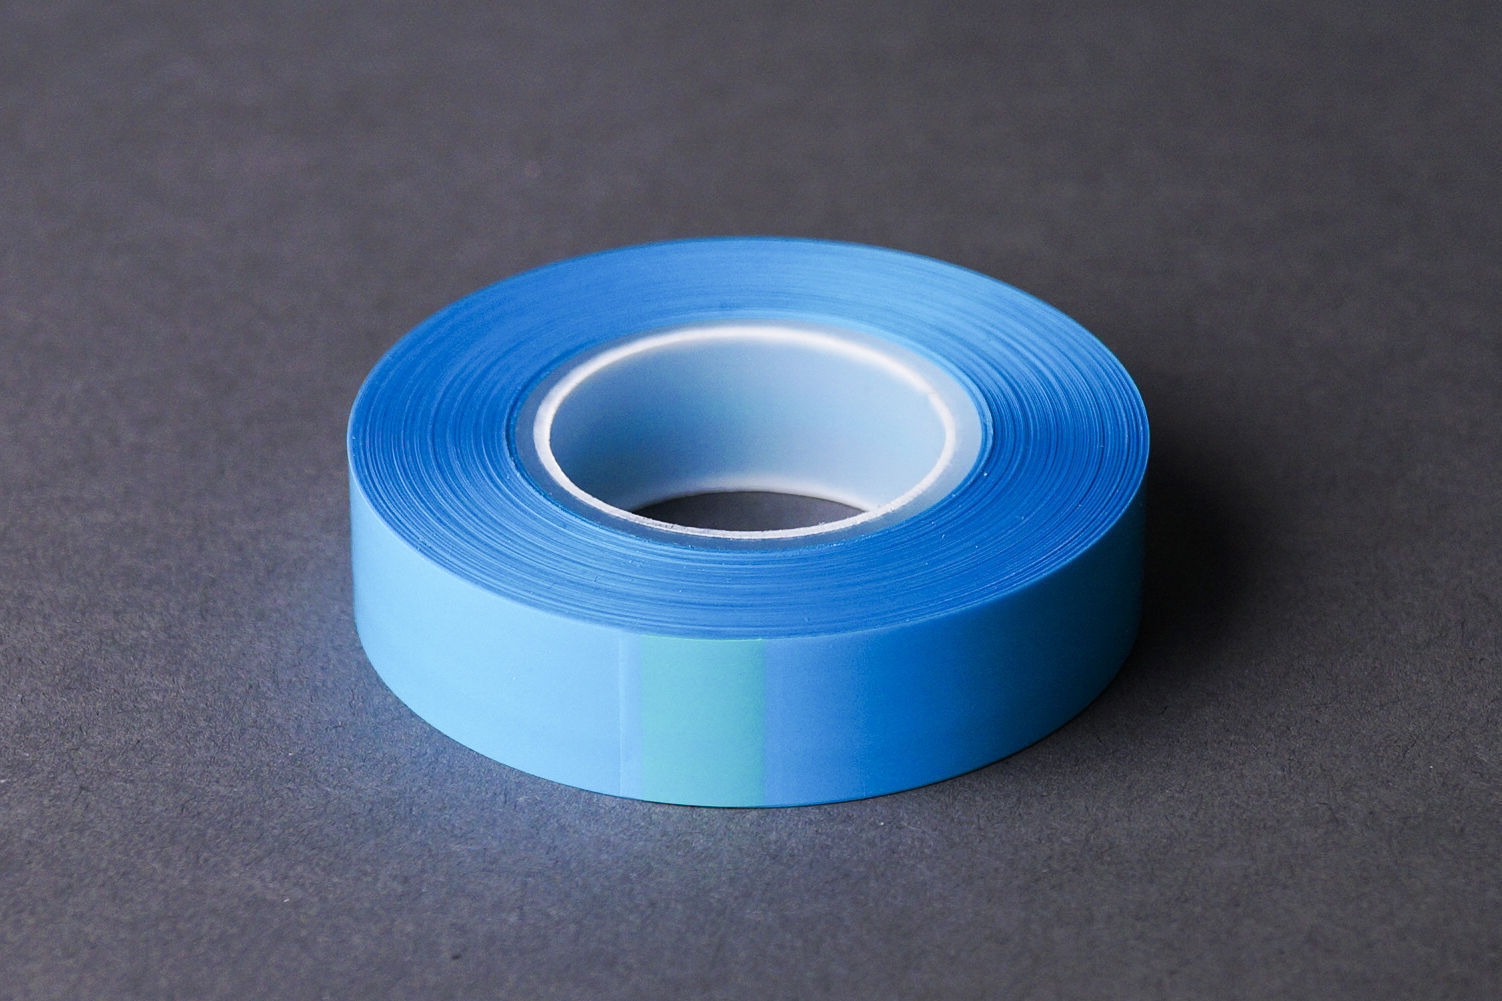 Splicing Tape New Pyral Basf Rtm Splicing Tape 1 2